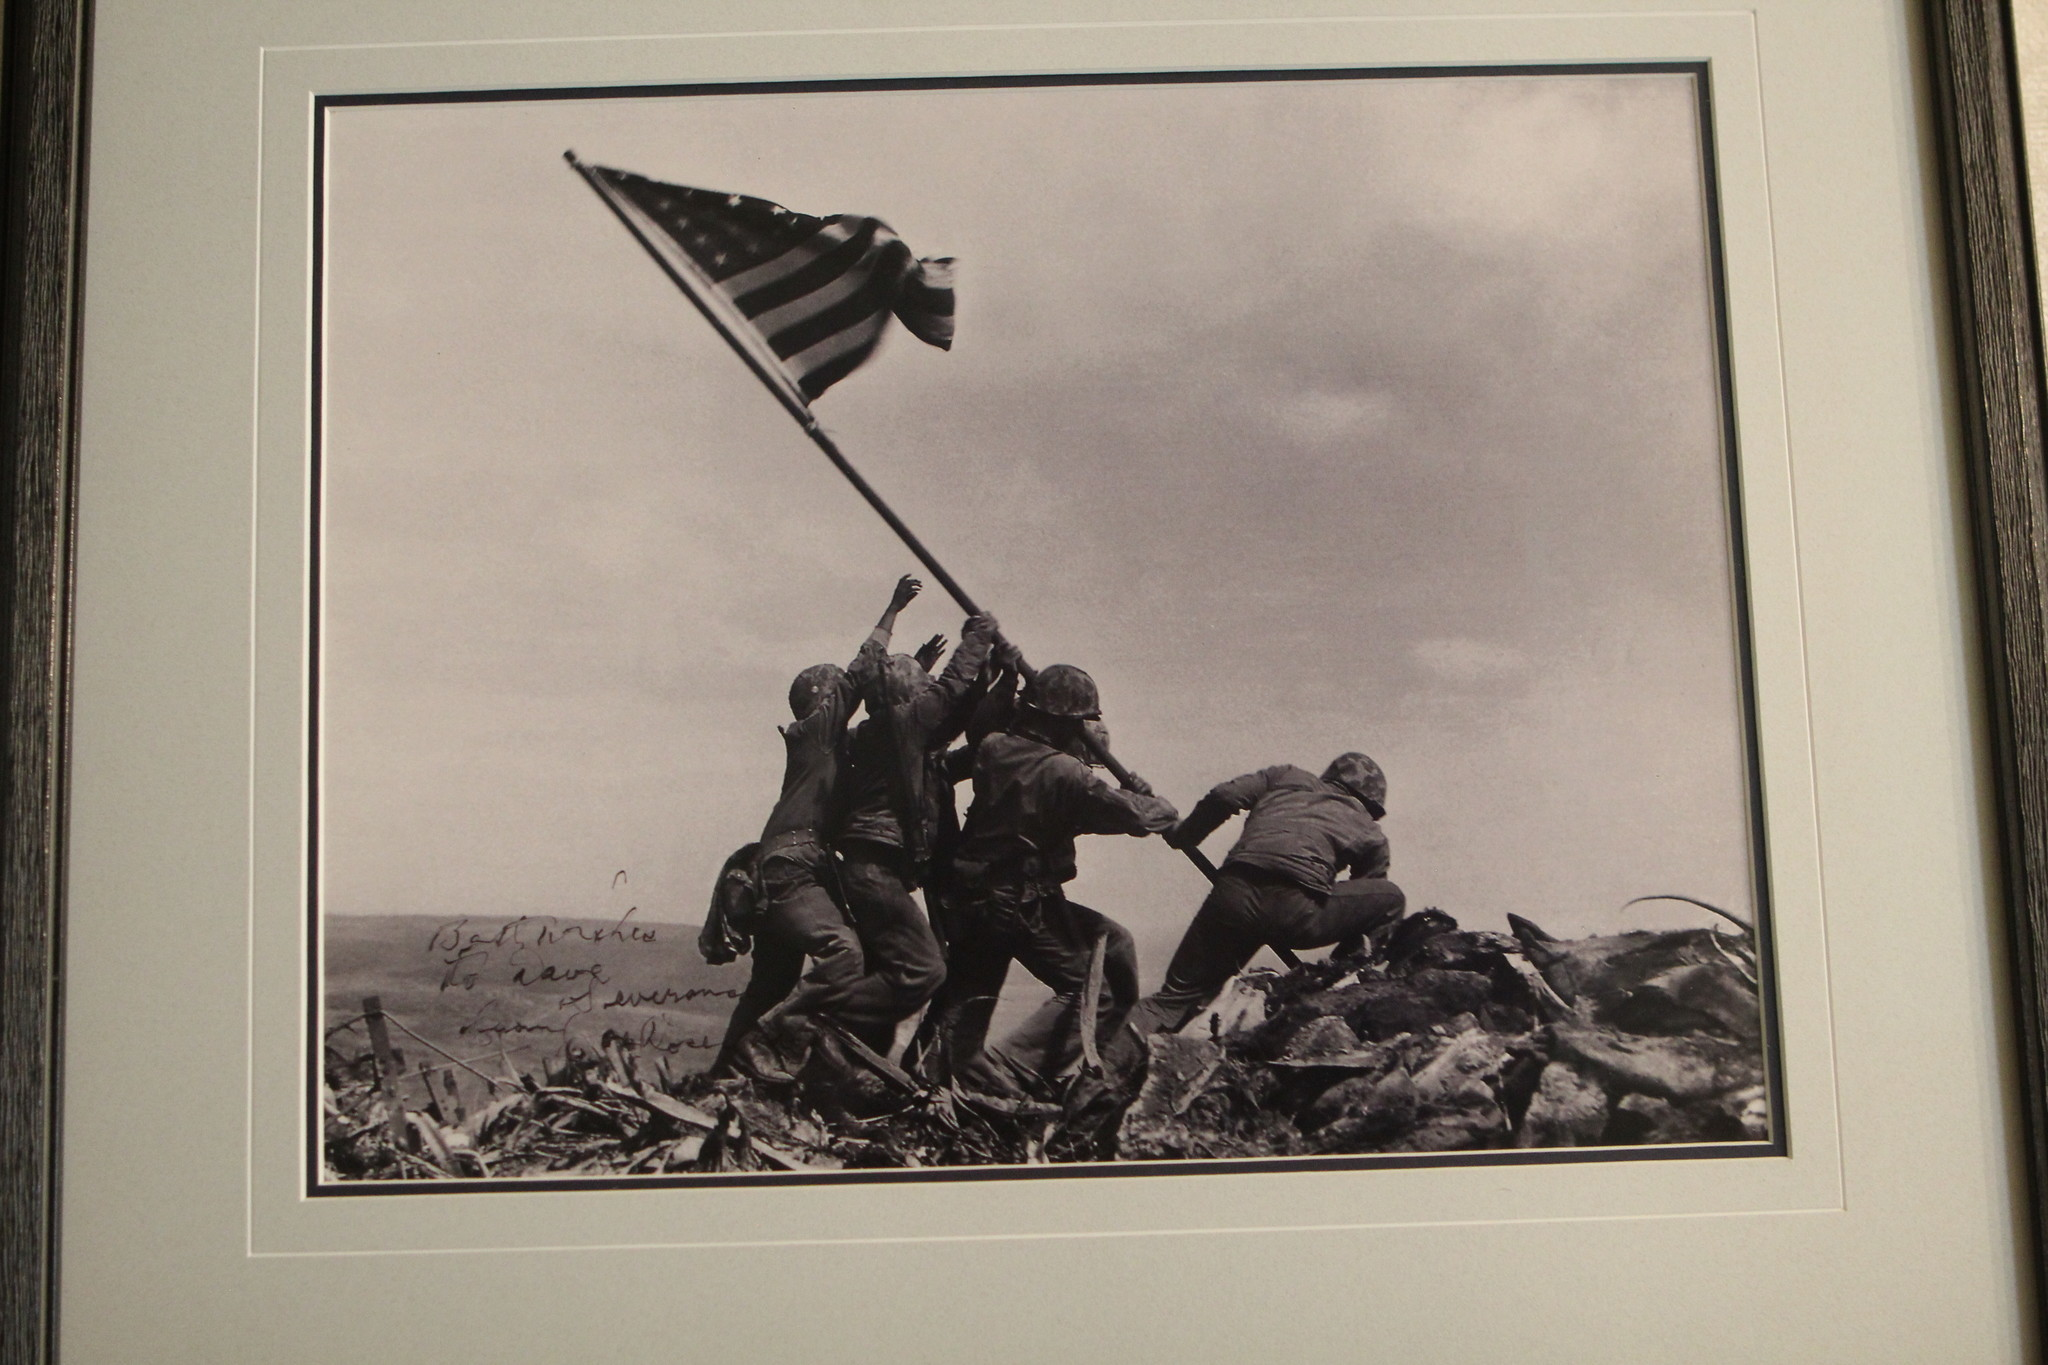 Severance owns a copy of the iconic Iwo Jima photo autographed to him by its photographer, Joe Rosenthal.